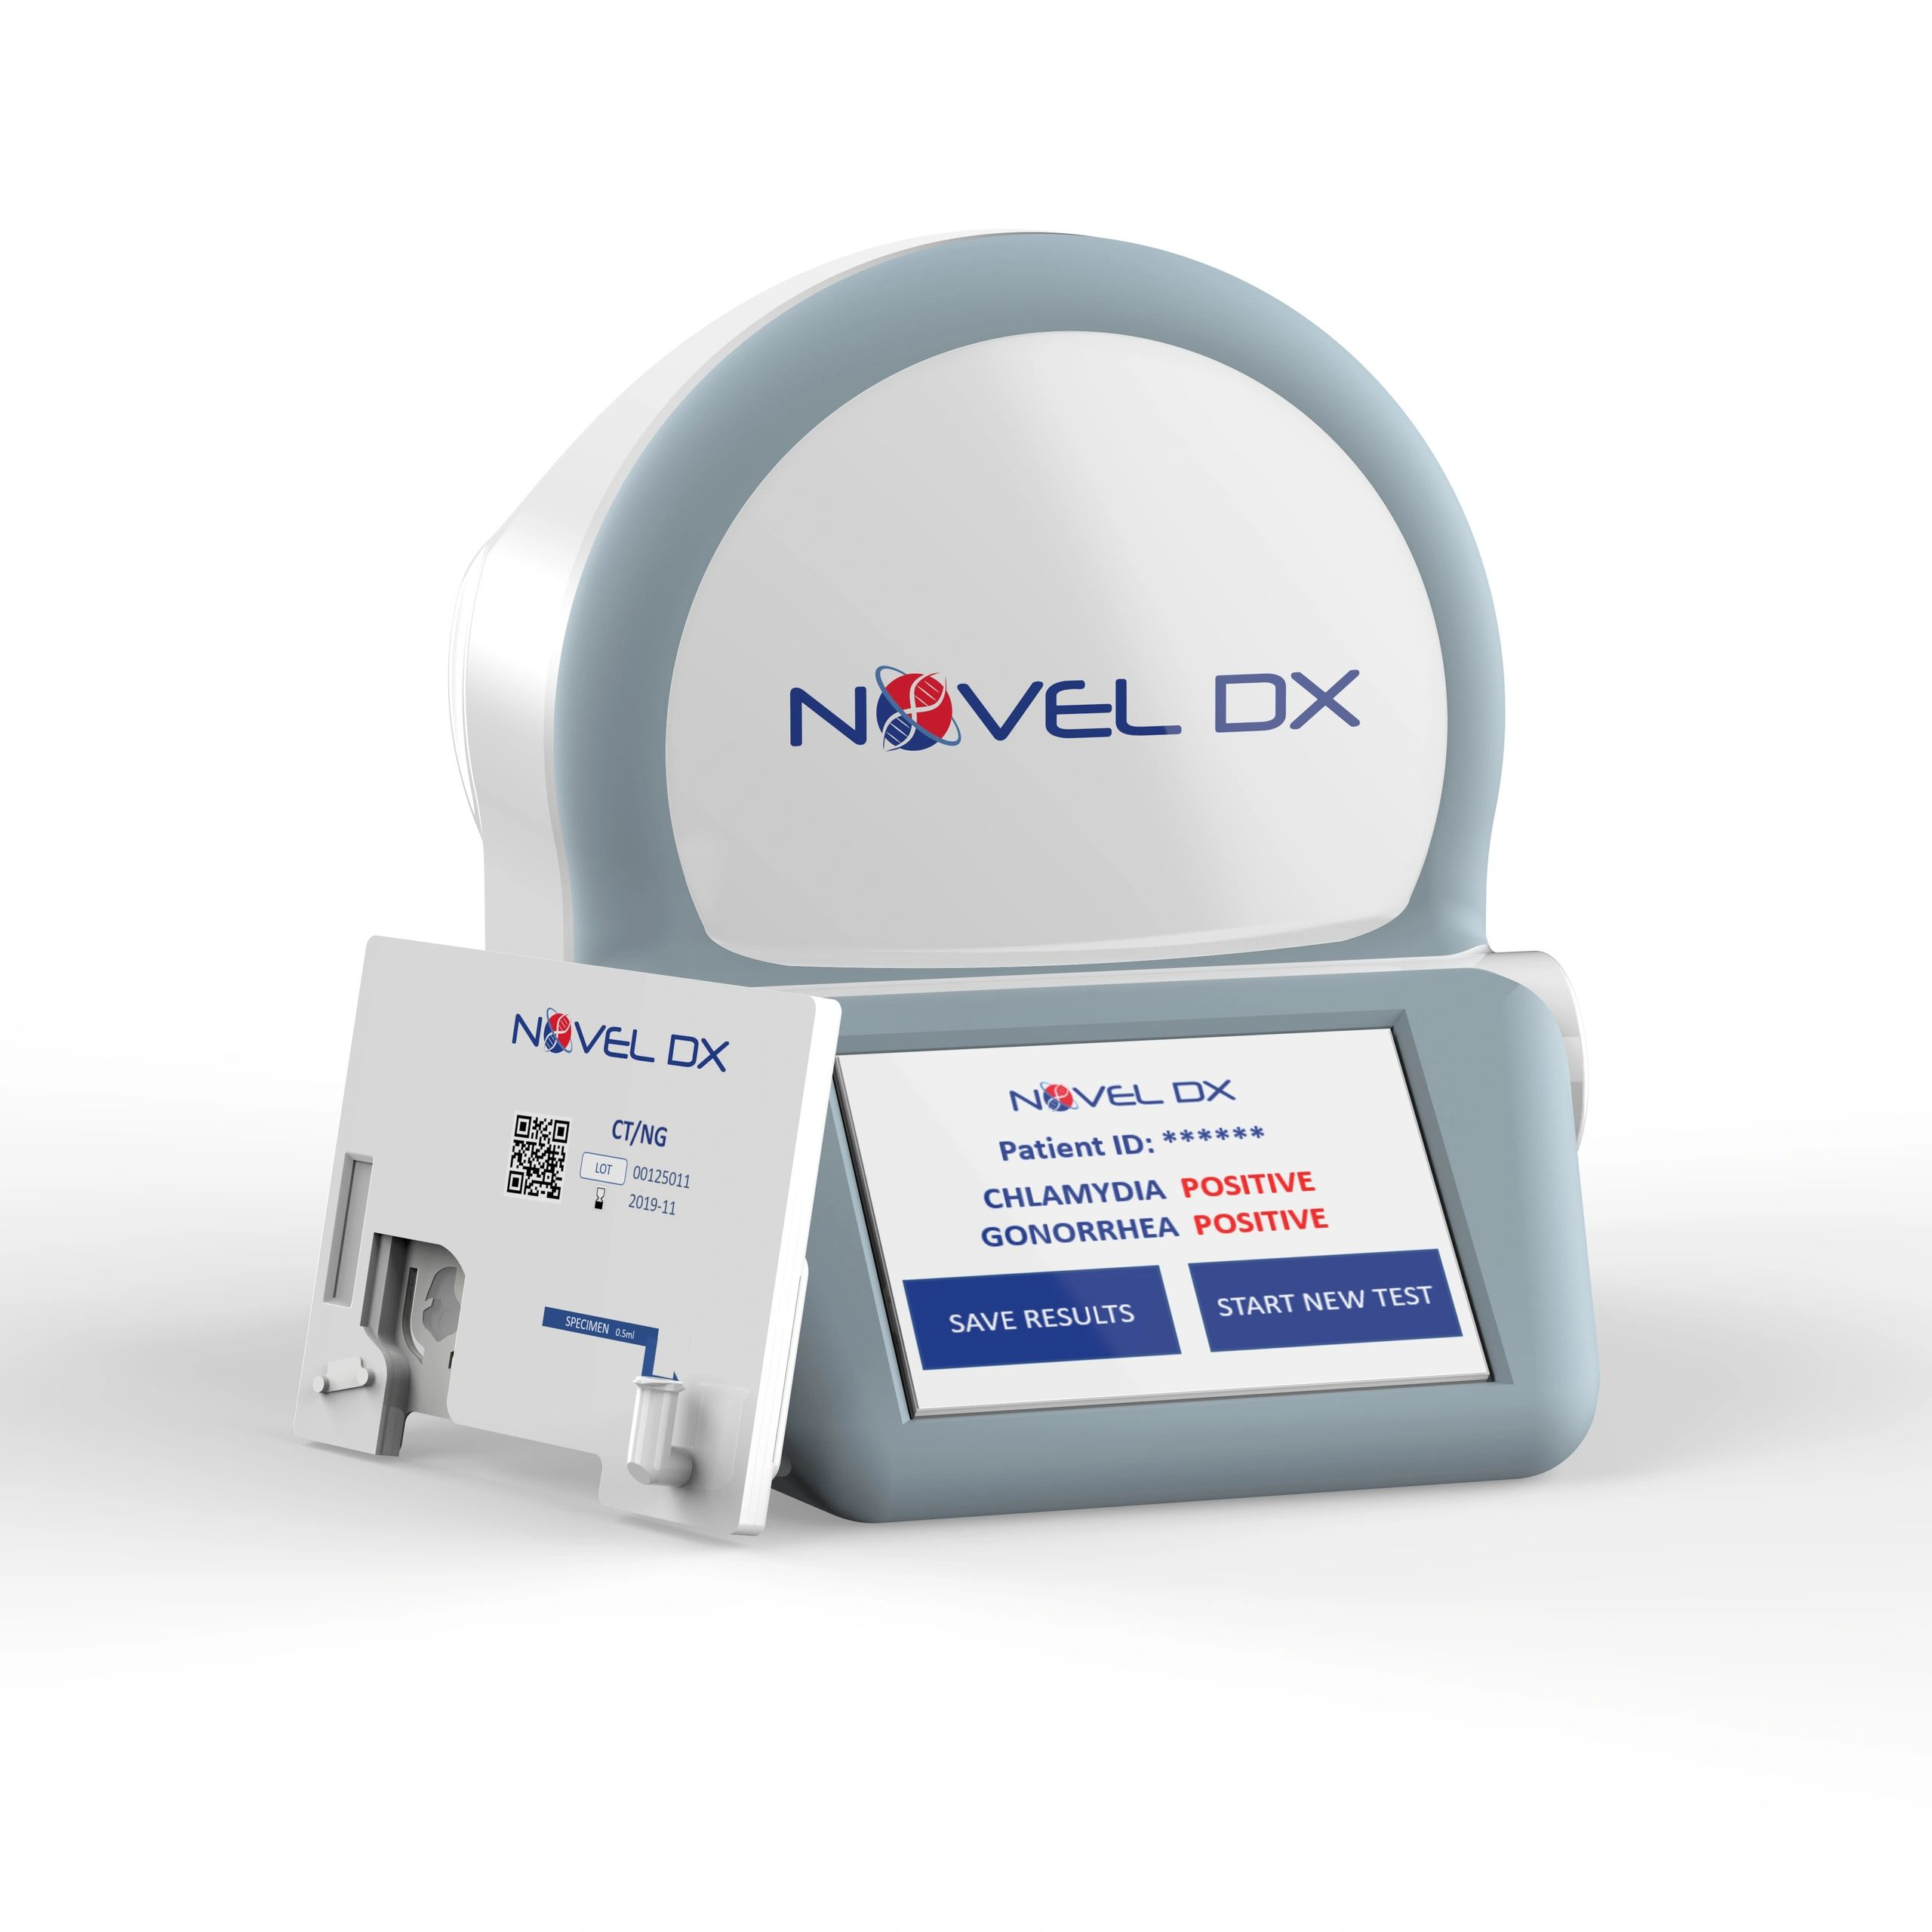 Novel Dx Ct/Ng, NovelDx, Rapid Molecular Diagnostics, Ultraportable